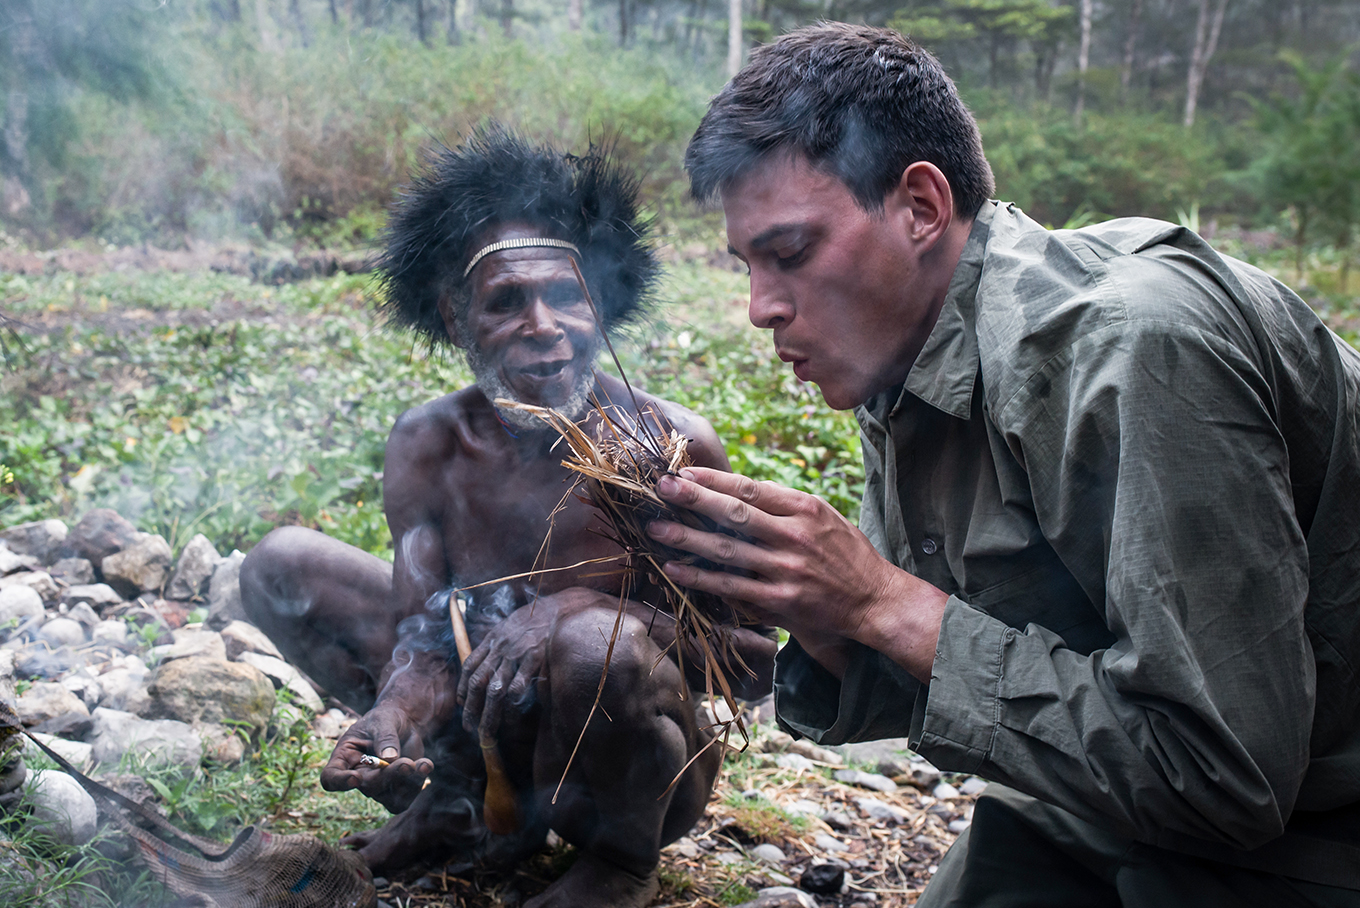 Dan Hume in West Papua fire making skills